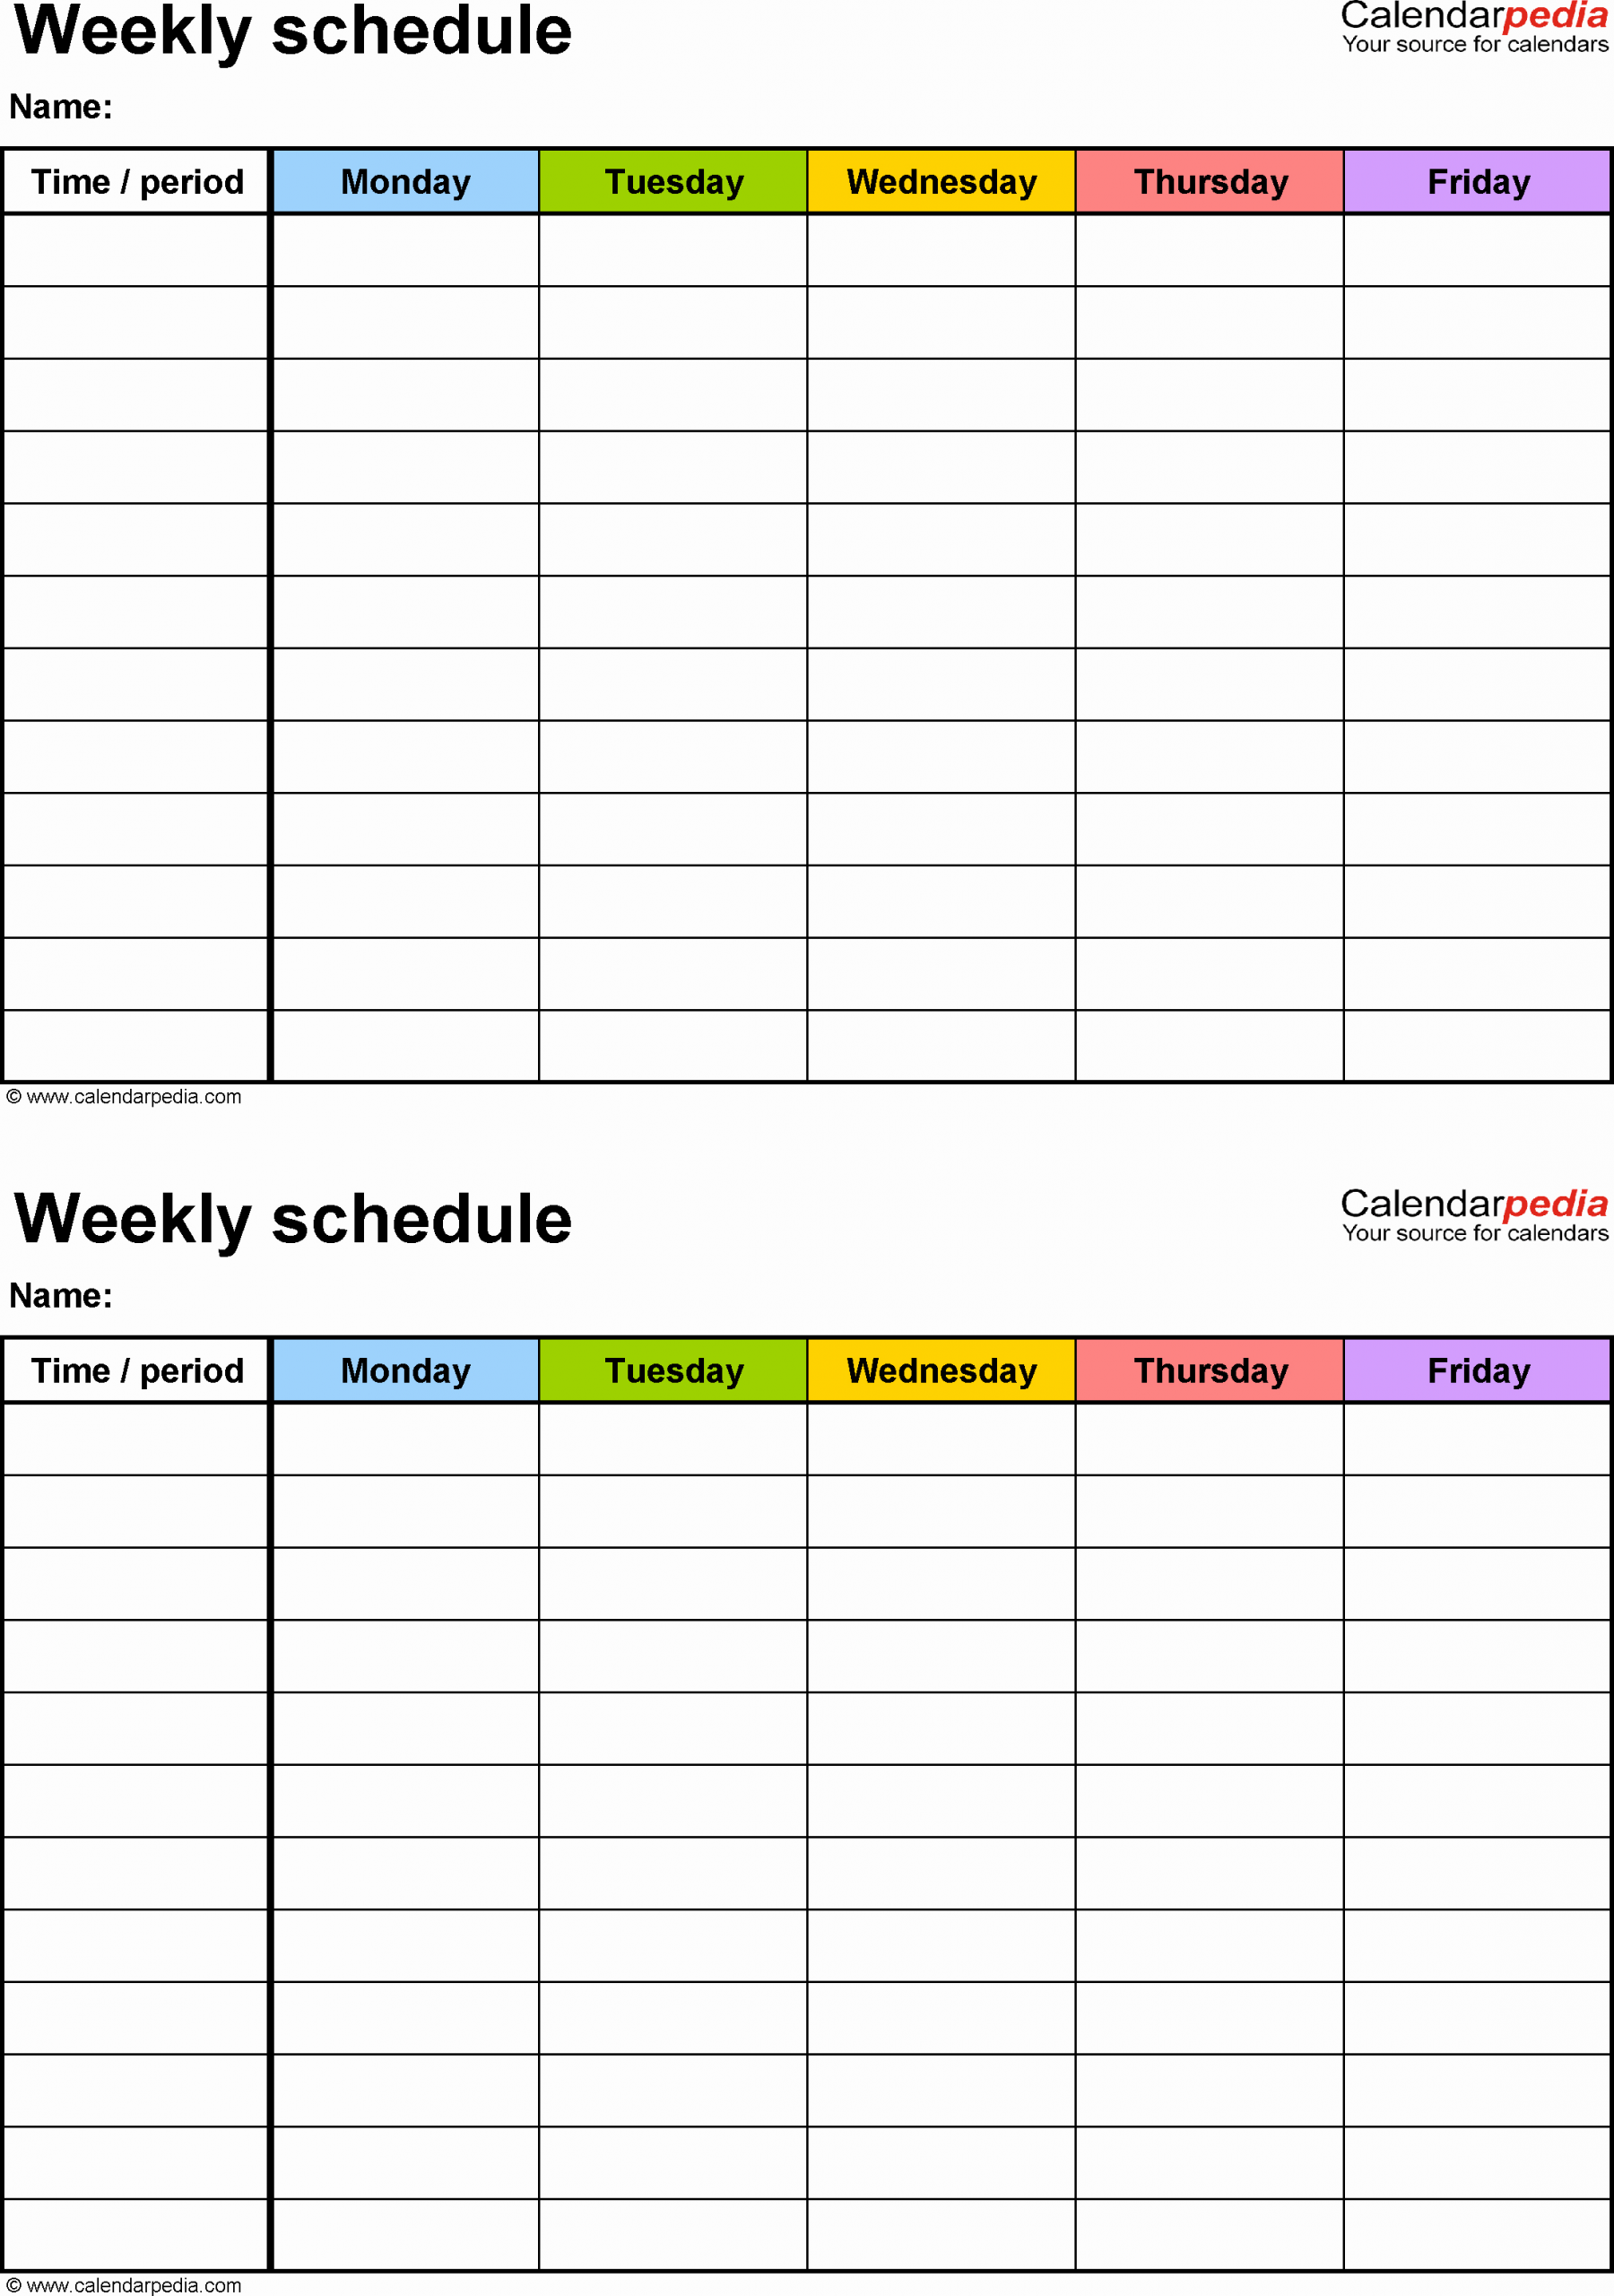 Daily Time Schedule Template Lovely Weekly Schedule Template for Pdf Version 3 2 Schedules On